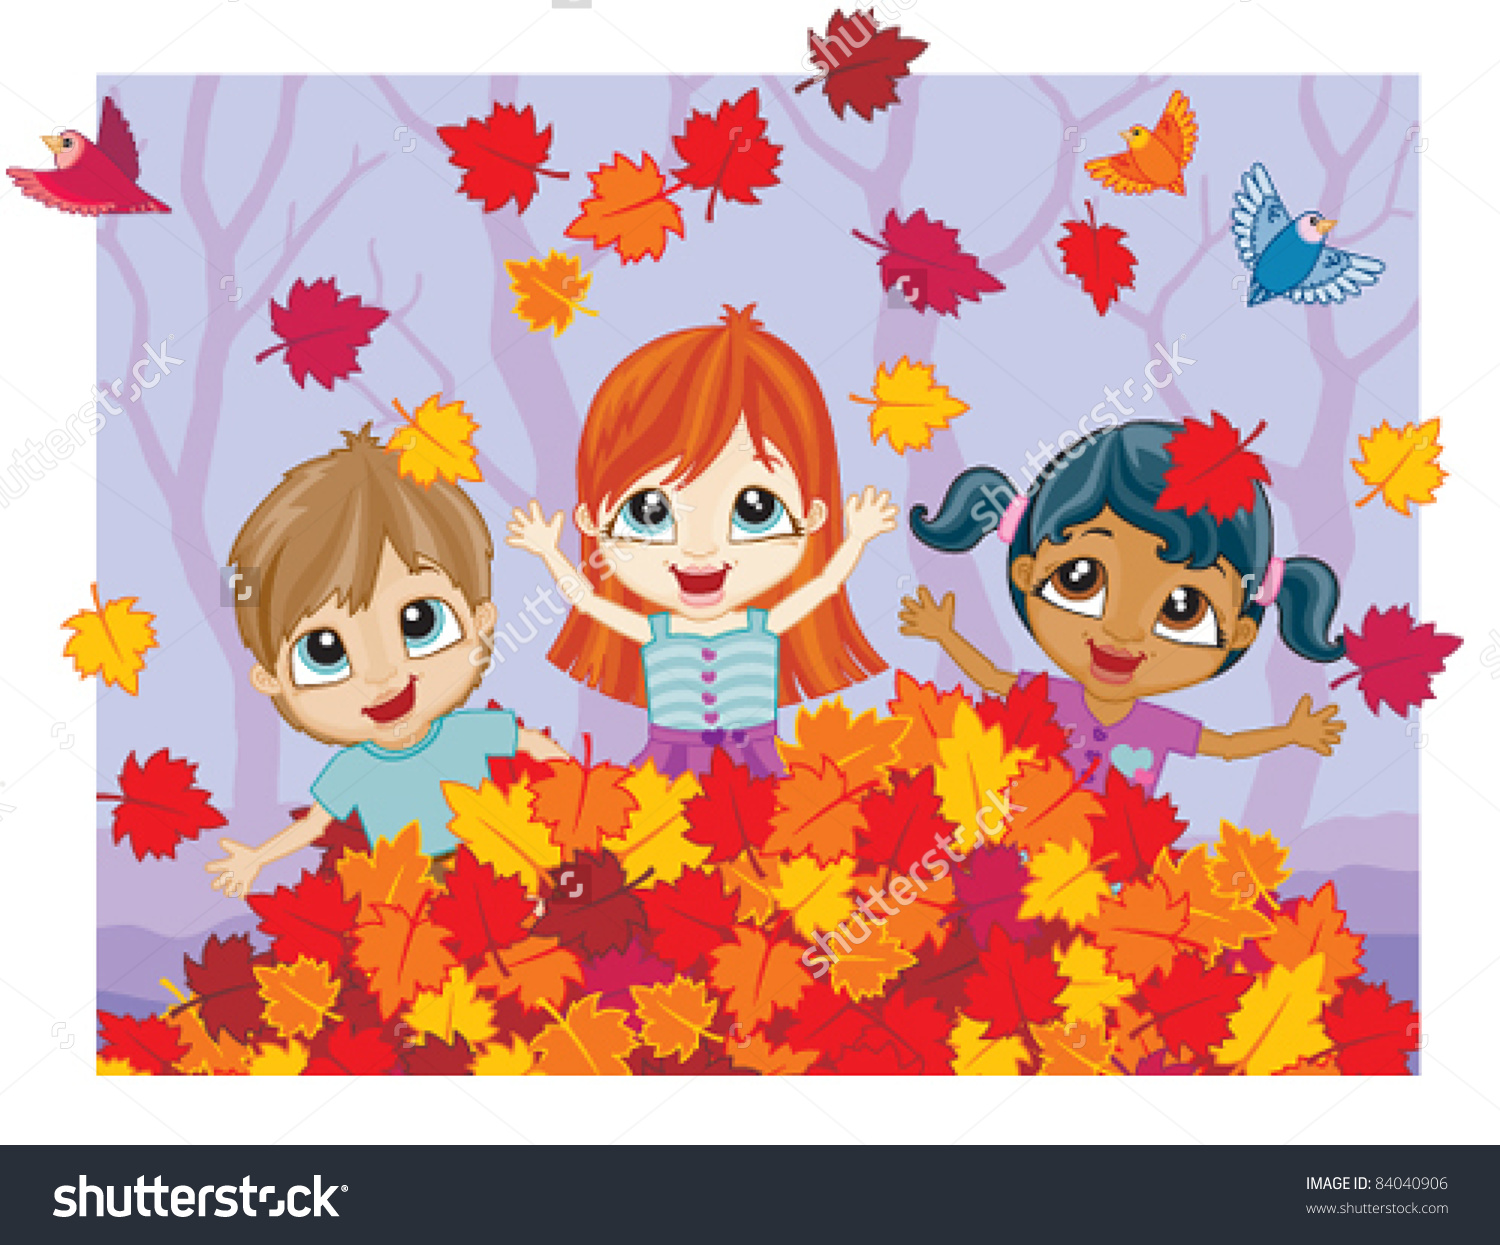 Children Playing In Leaves Clipart.